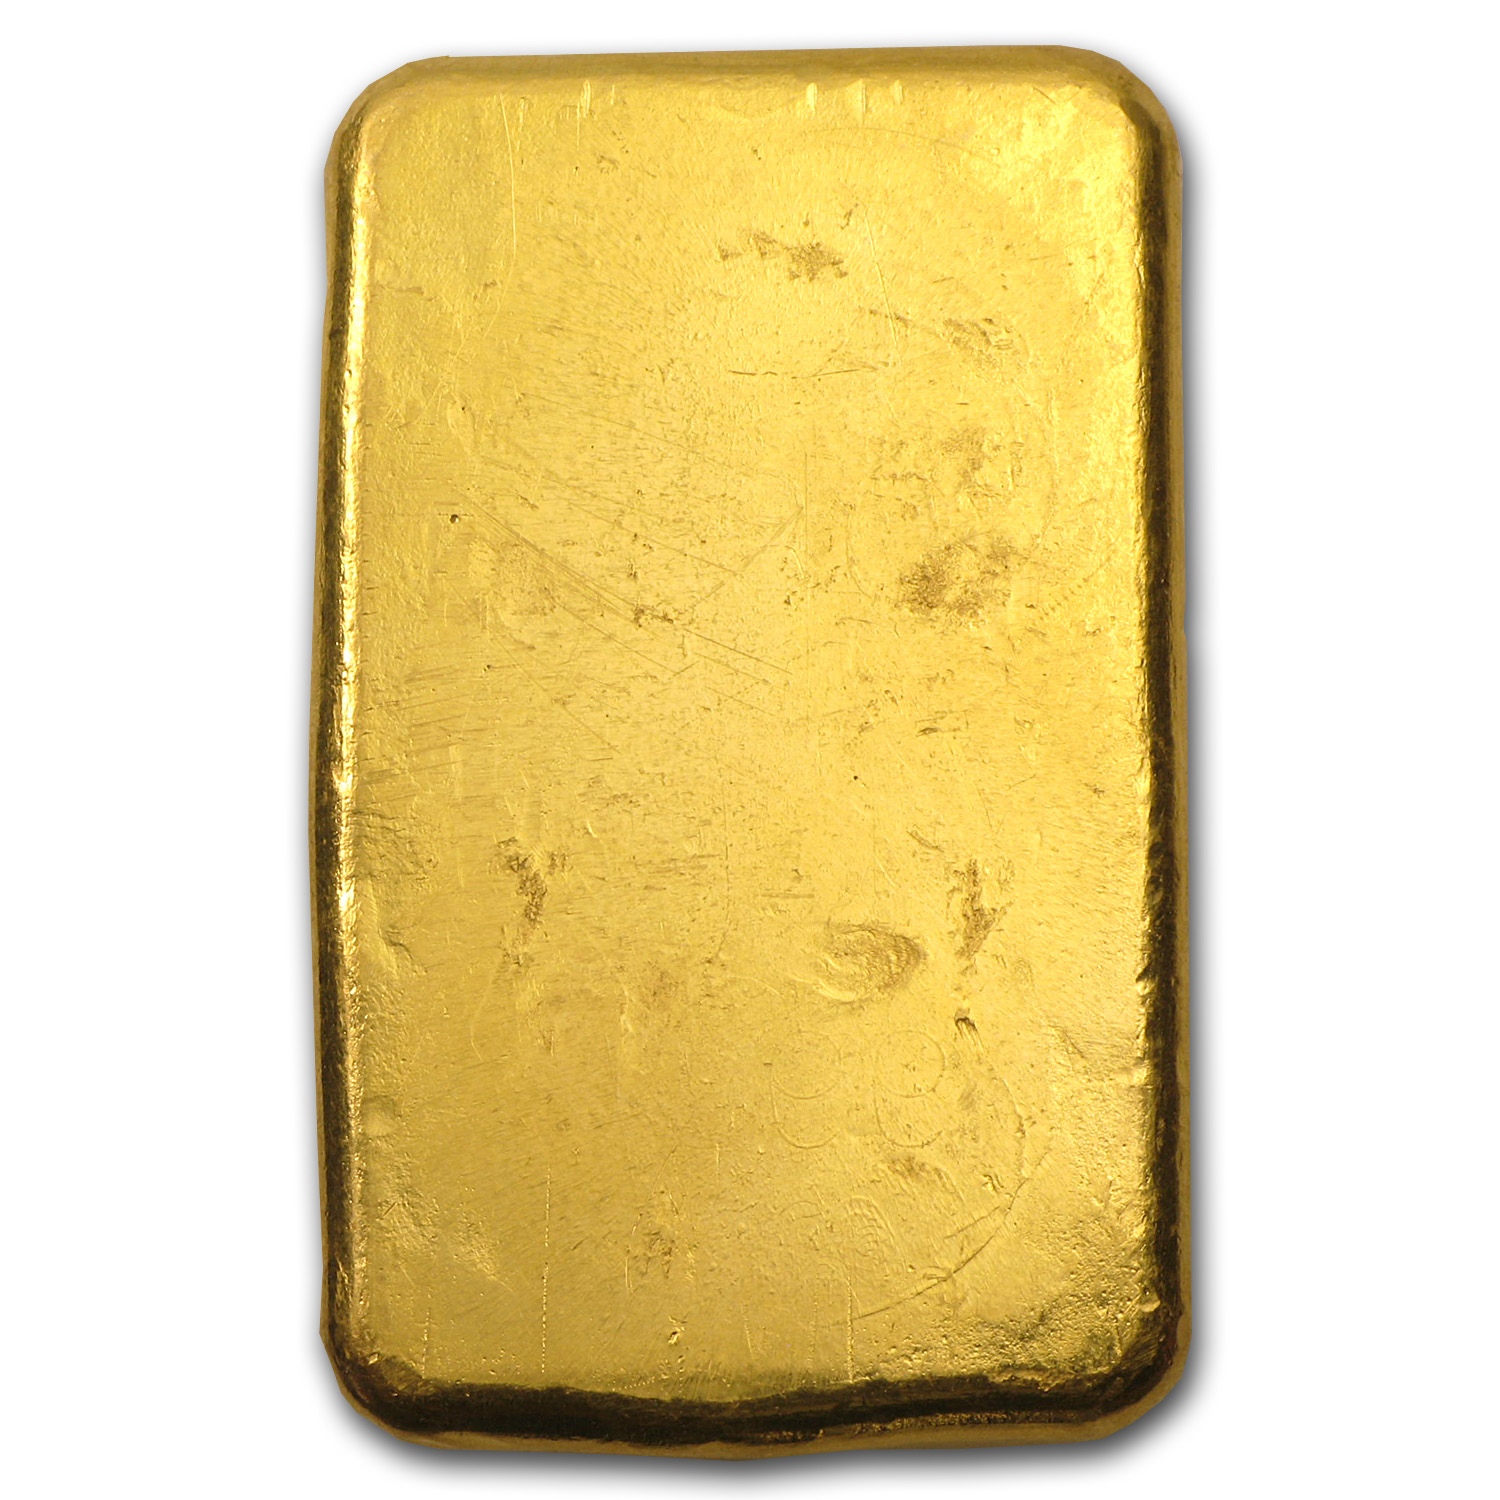 10 Tolas Gold Bars - Pamp Suisse (3.75 oz)